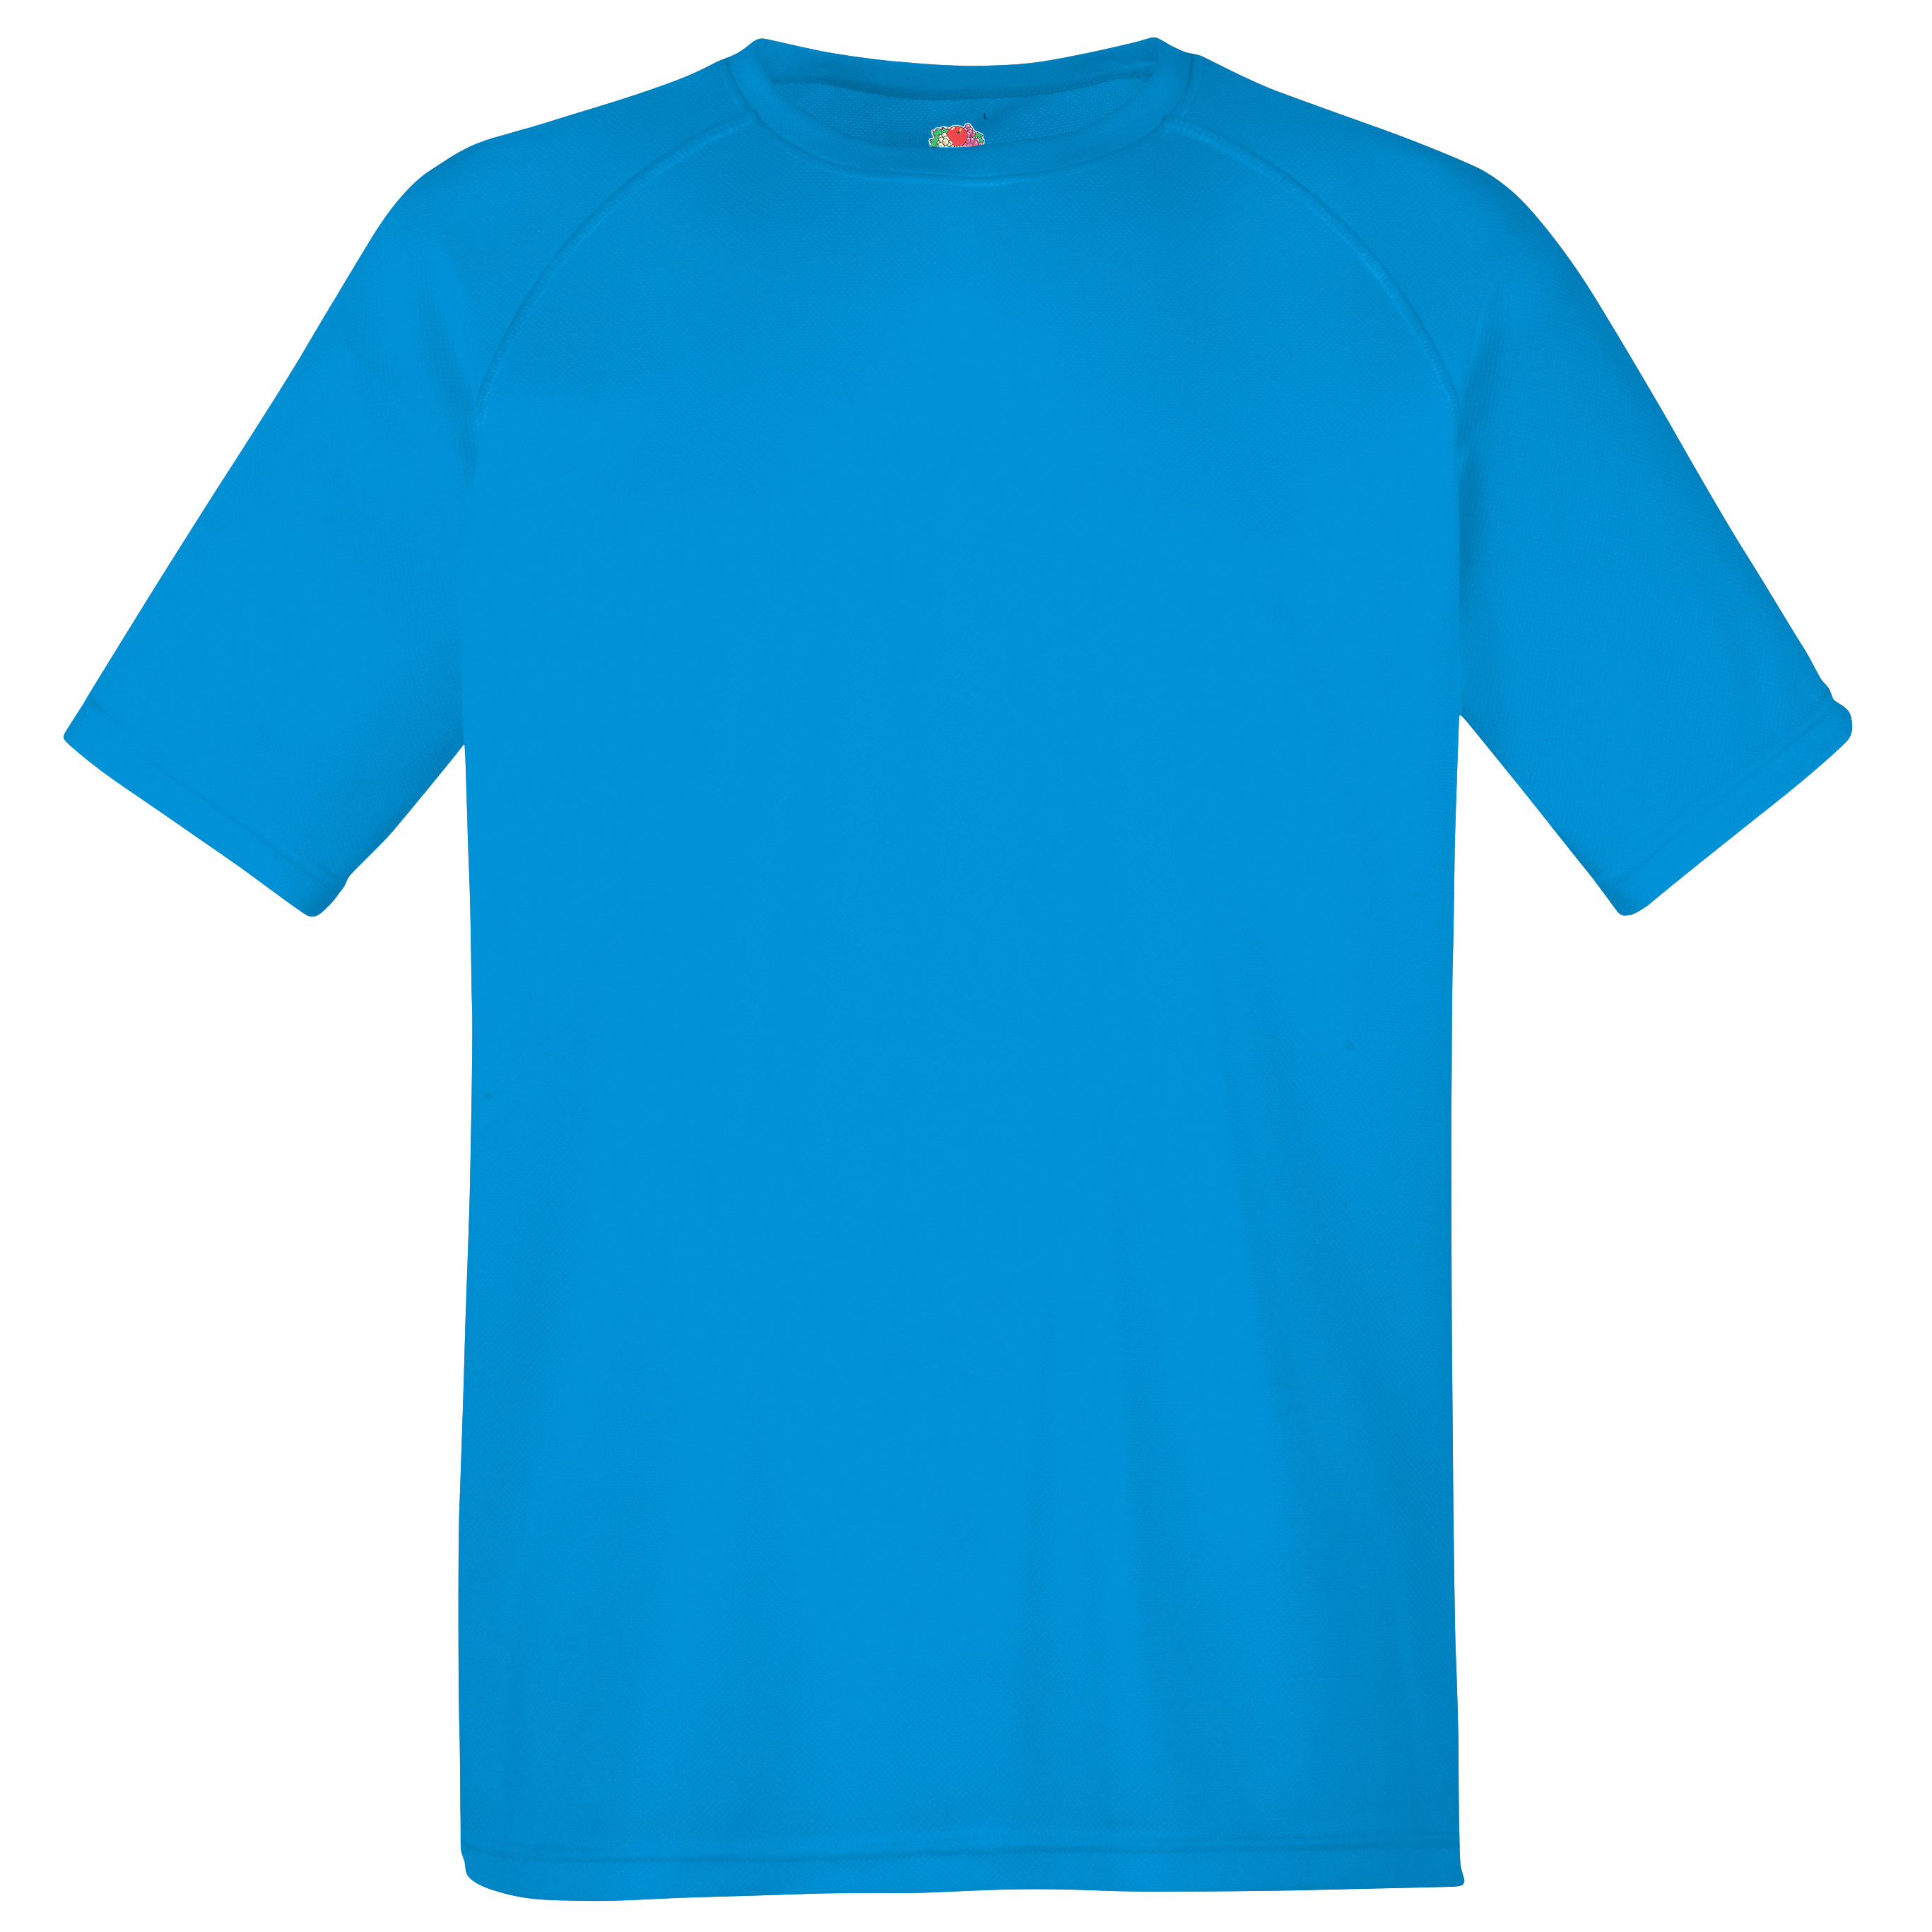 New Fruit of the Loom Childrens Kids Performance Sports Tshirt 4 Colours 6 Sizes